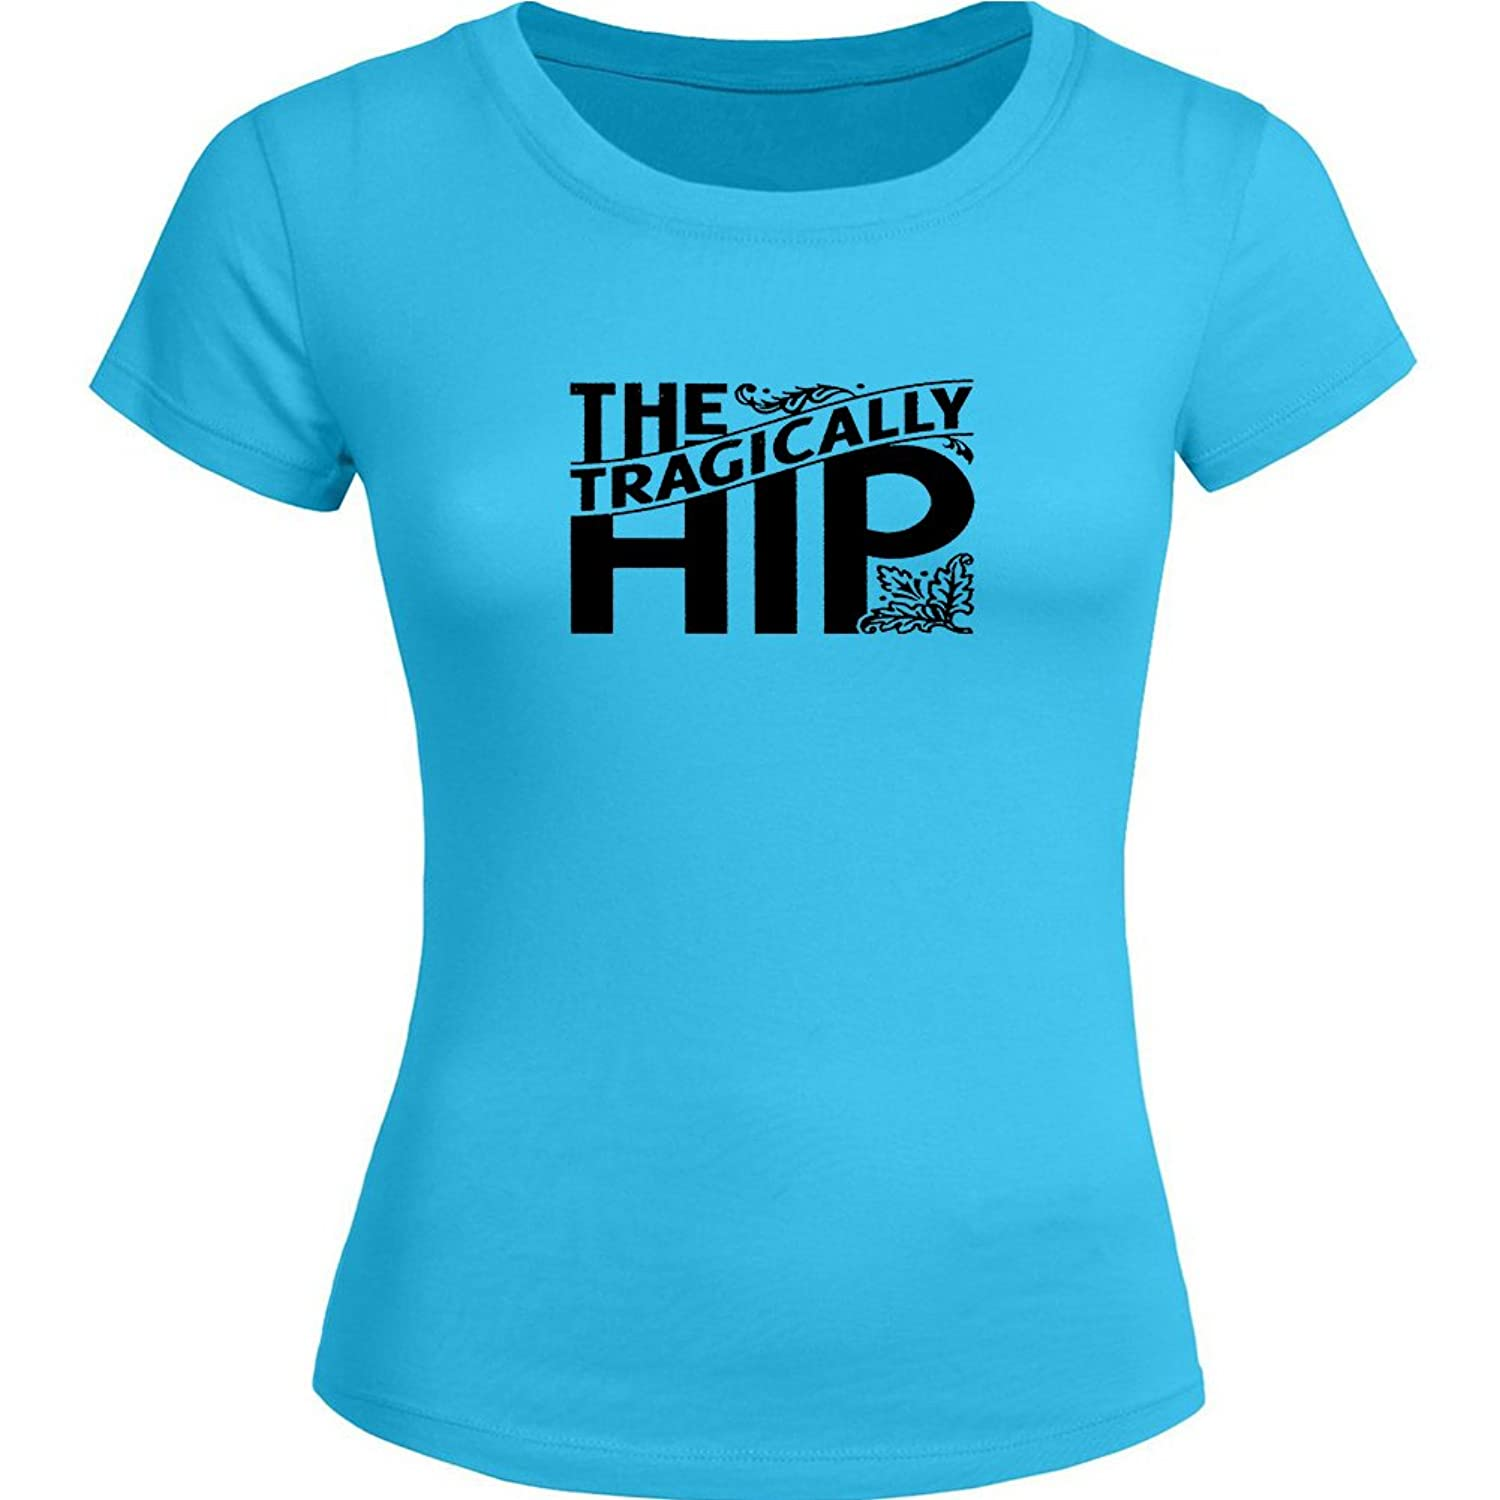 The Tragically Hip Printed For Ladies Womens T Shirt Tee